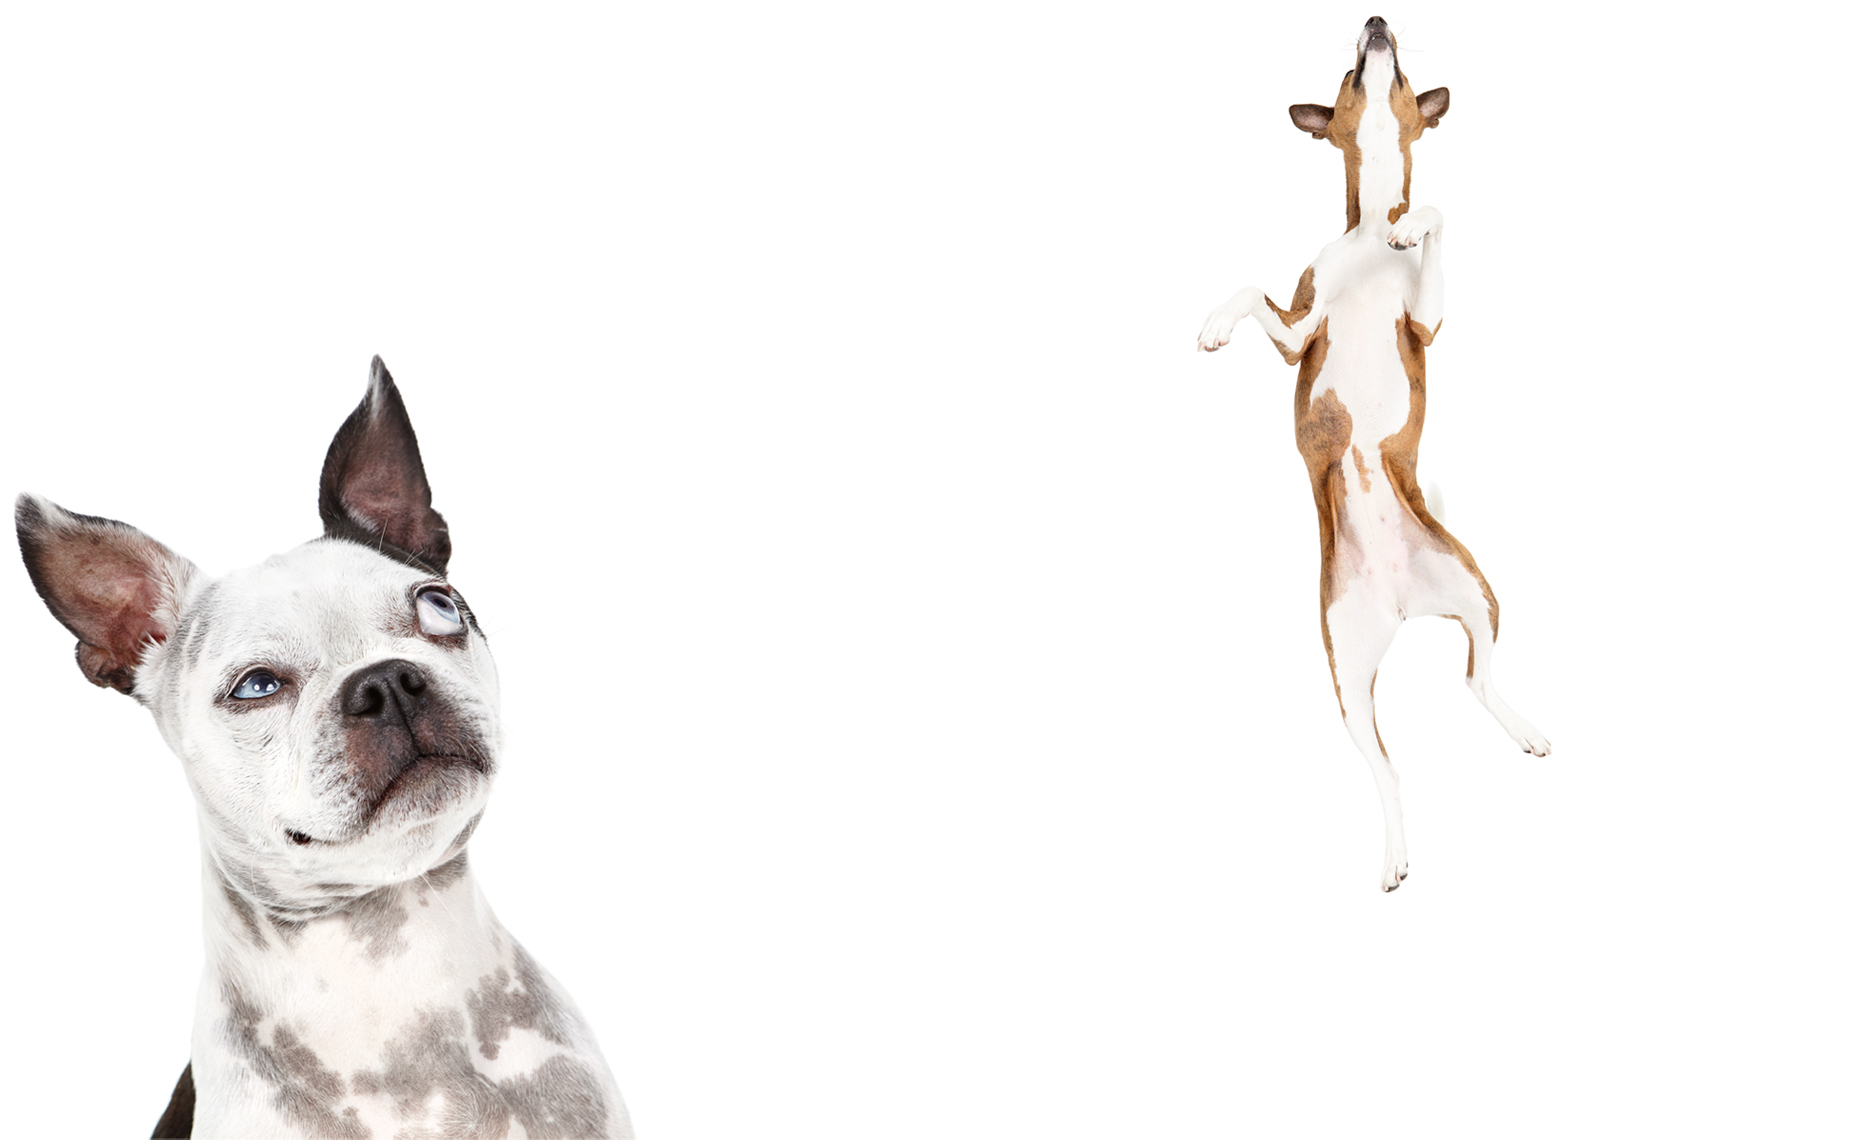 curious boston terrier and jumping basenji